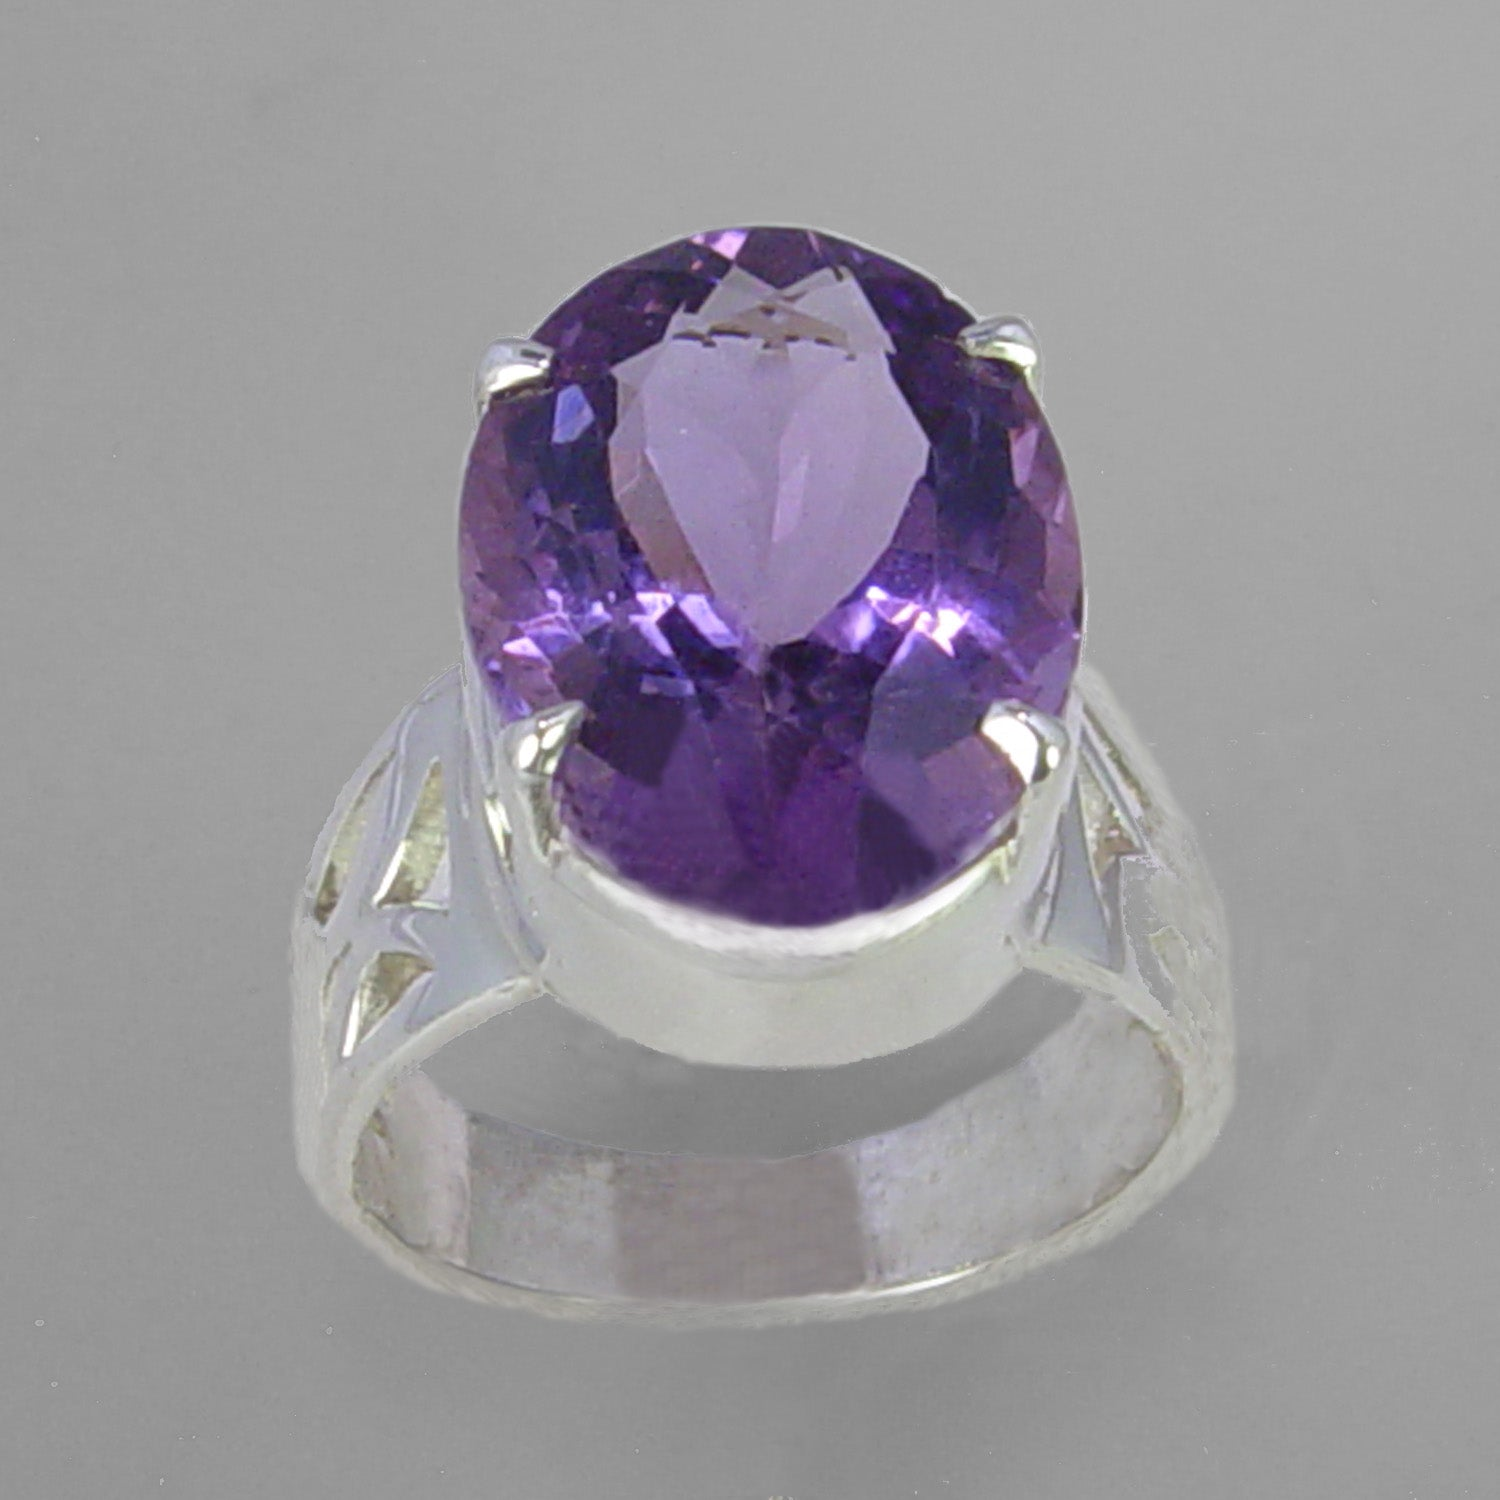 Amethyst 12 ct Faceted Oval Sterling Silver Ring, Size 7